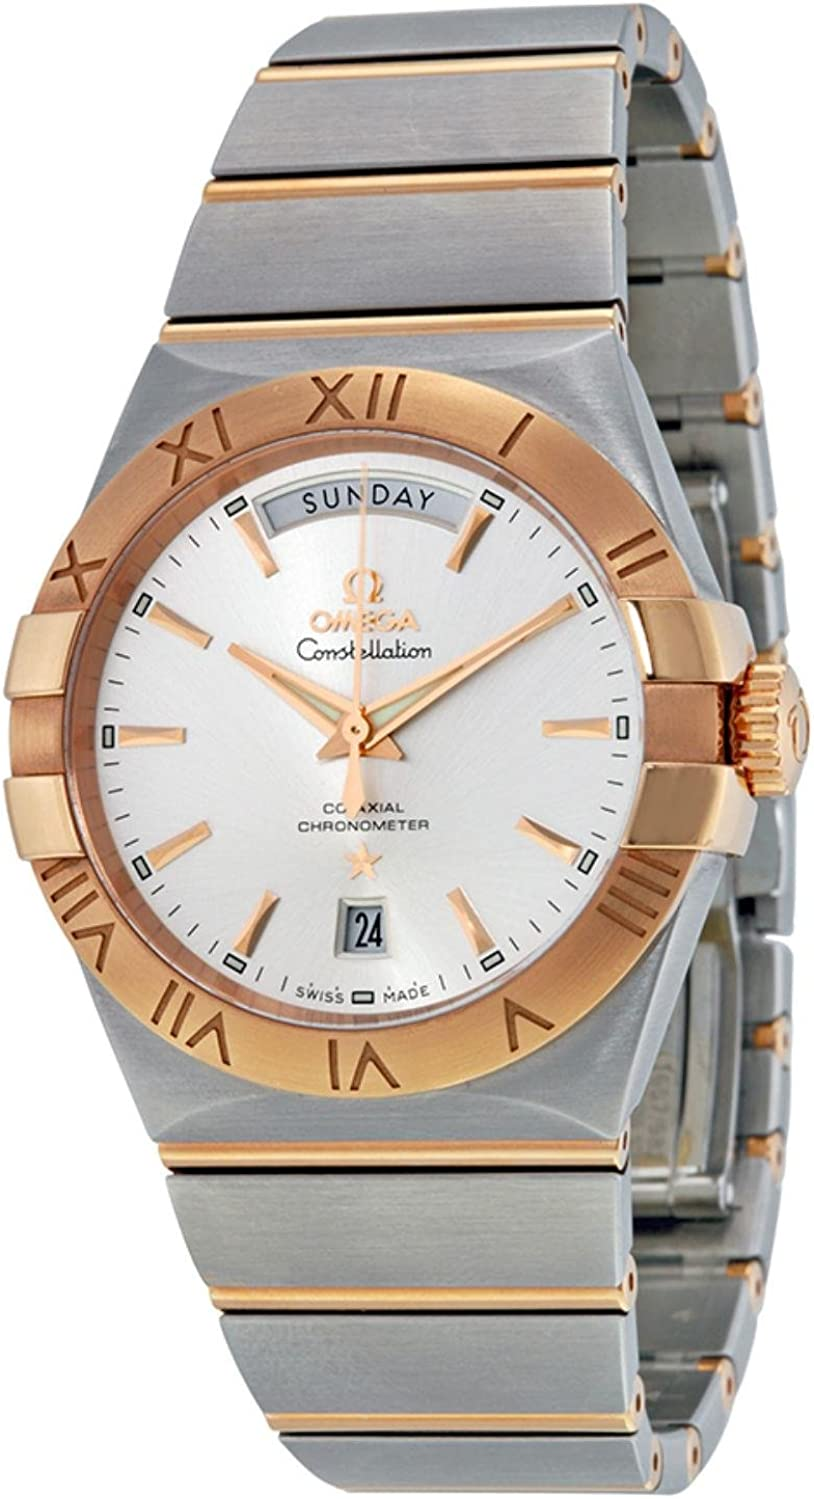 Omega Constellation Chronometer Silver Dial Rose-Gold and Steel Mens Watch 12320382202001